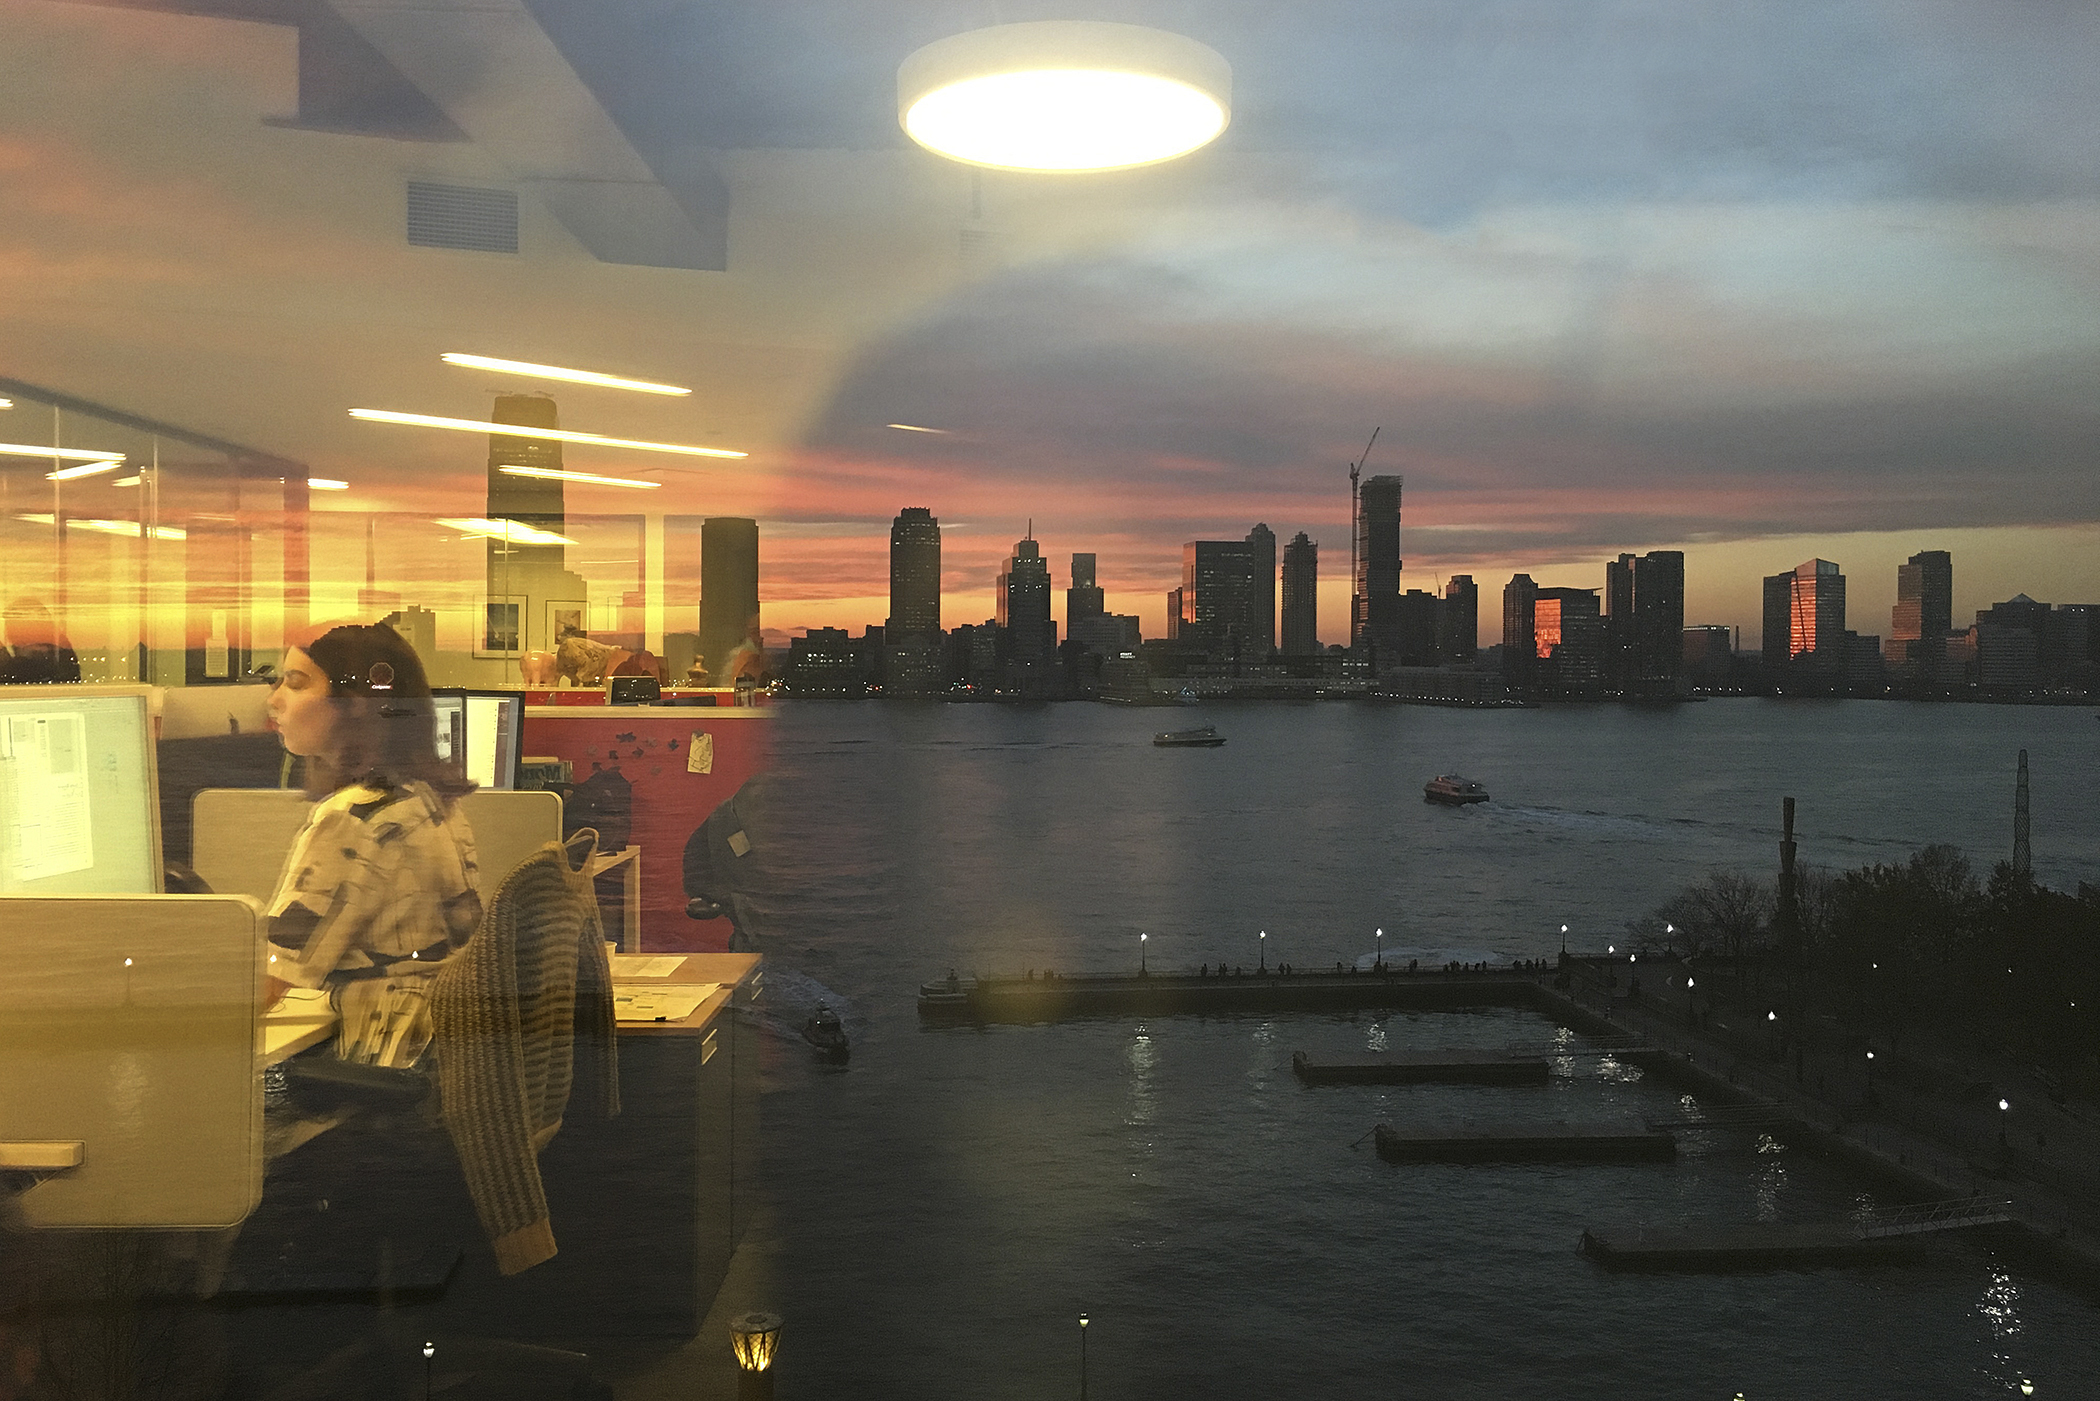 The view of New Jersey and the Hudson River from Time Inc.'s 225 Liberty offices, New York.